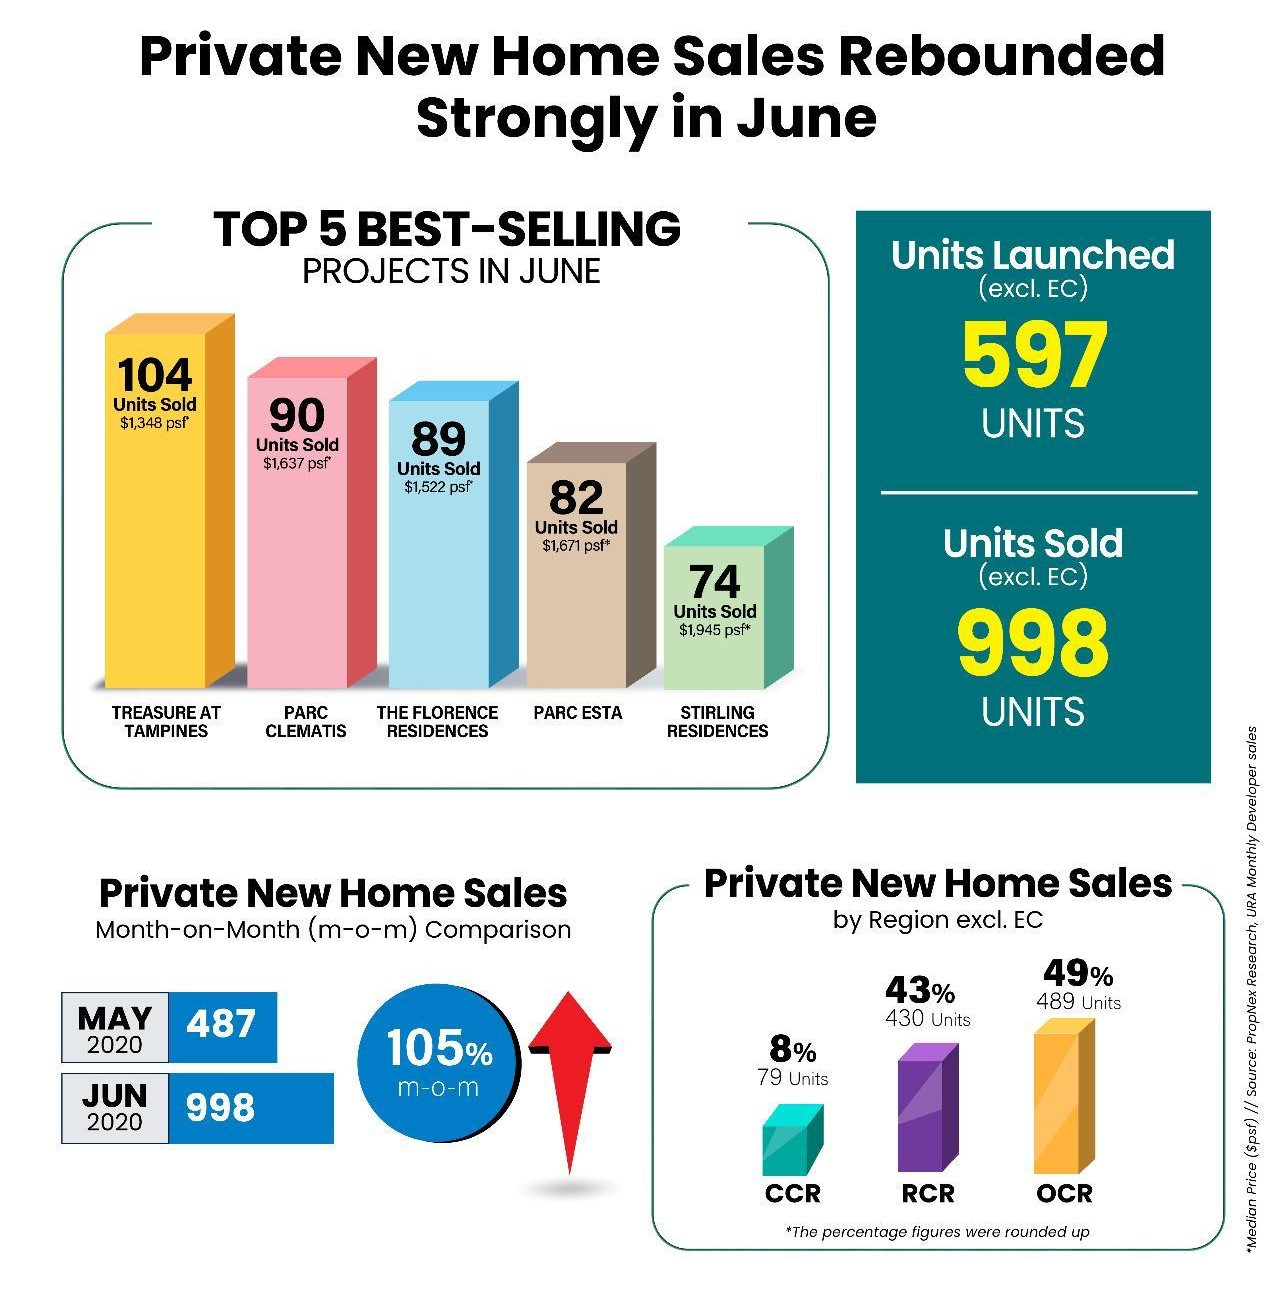 property-investor-singapore-private-new-home-sales-rebounded-strongly-in-june